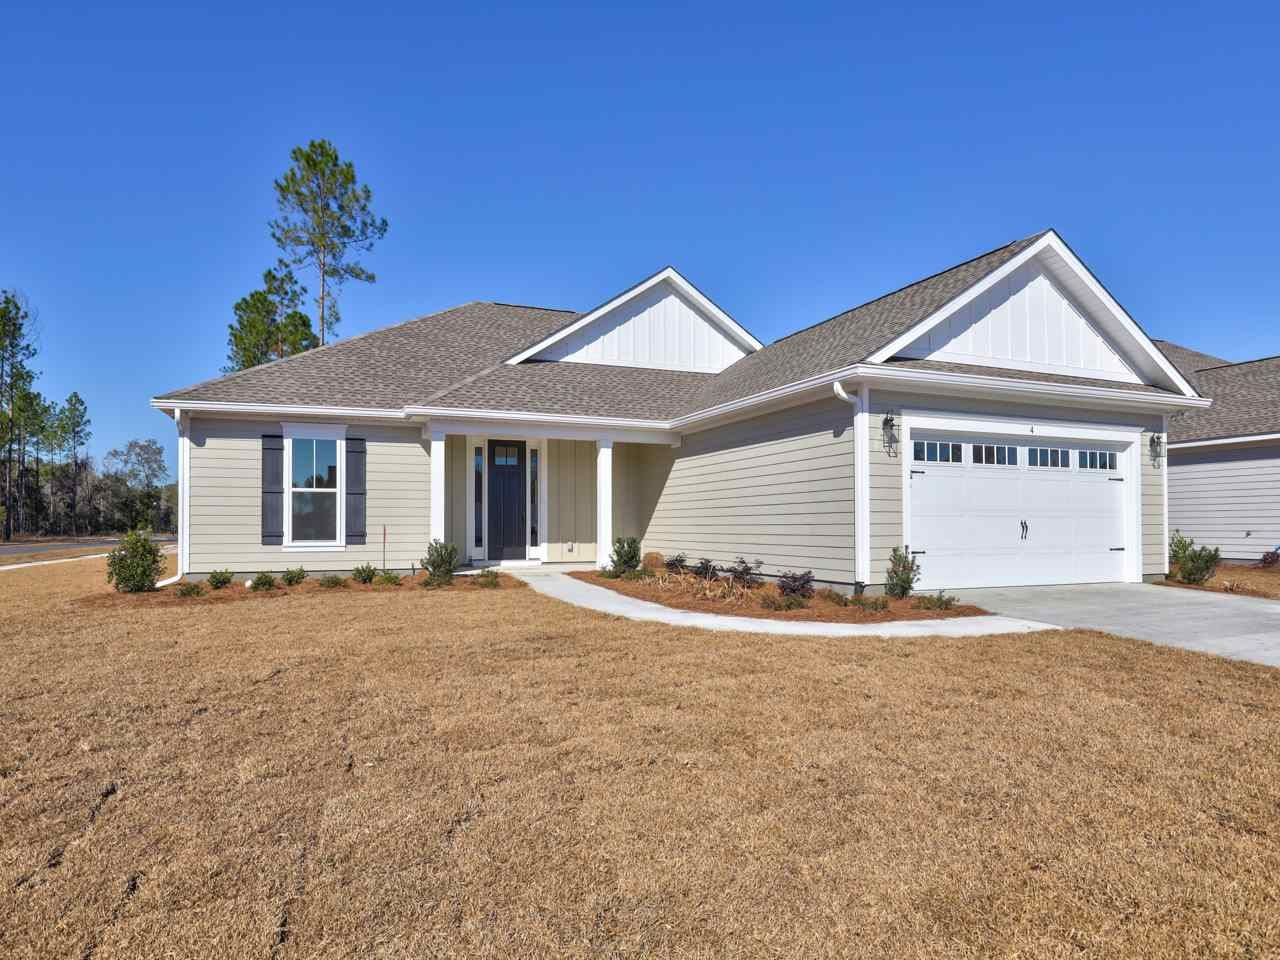 180 London Circle, Crawfordville, FL 32327 - MLS#: 331103